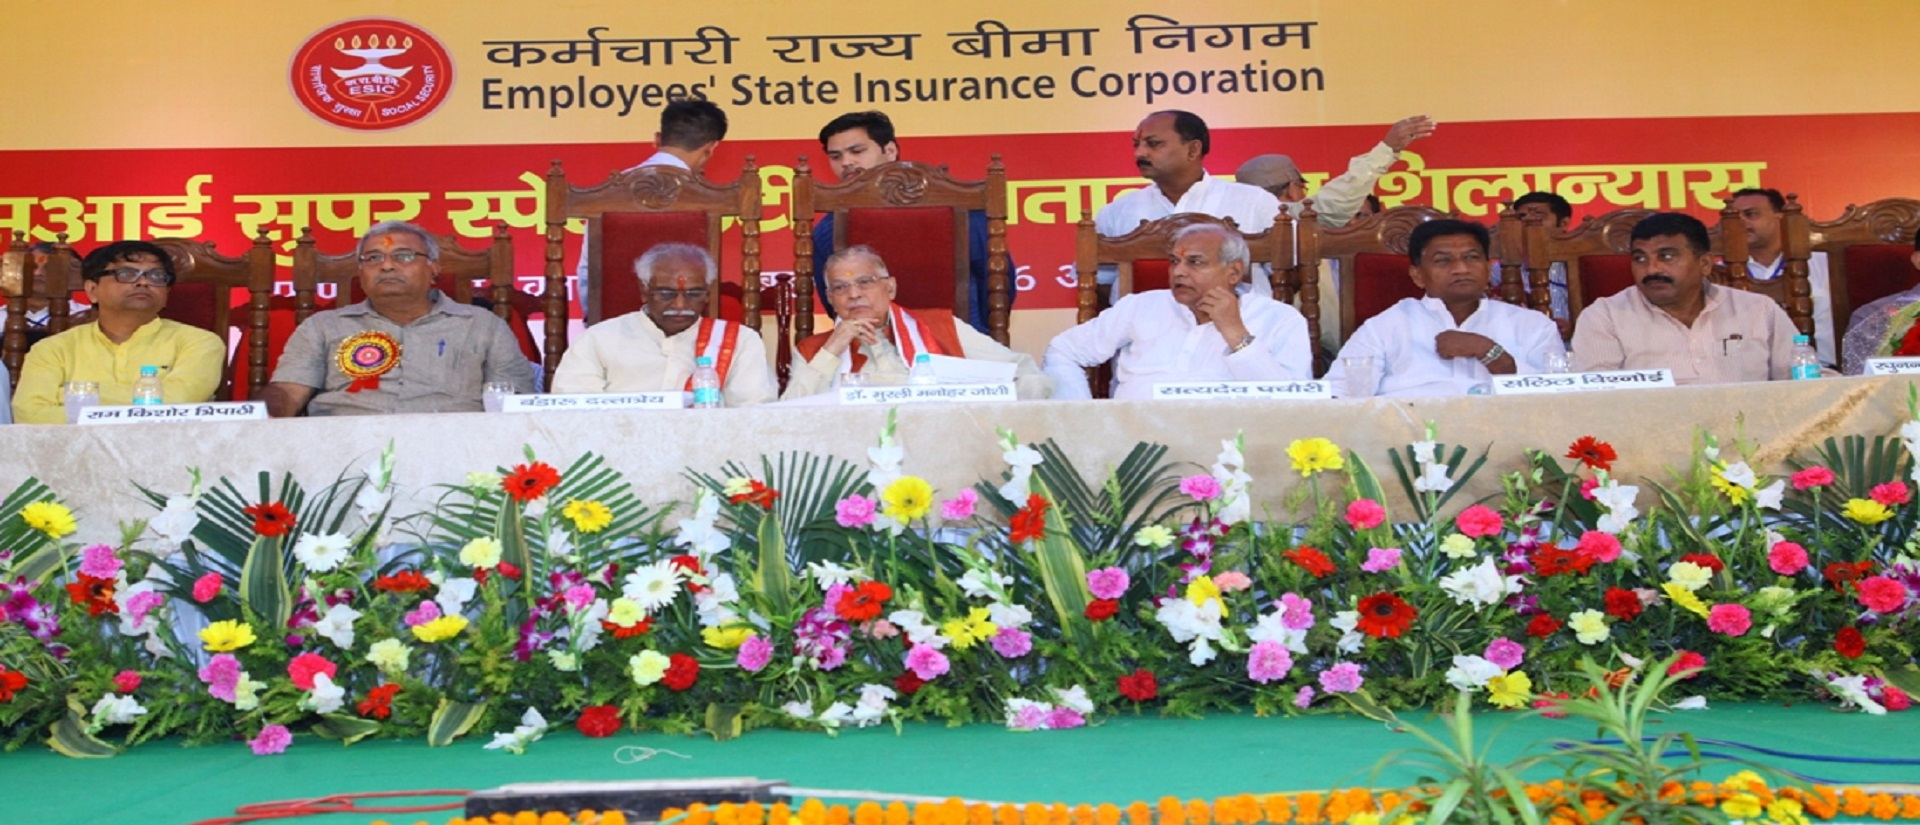 Foundation Stone Laying of Super Speciality Hospital at Kanpur